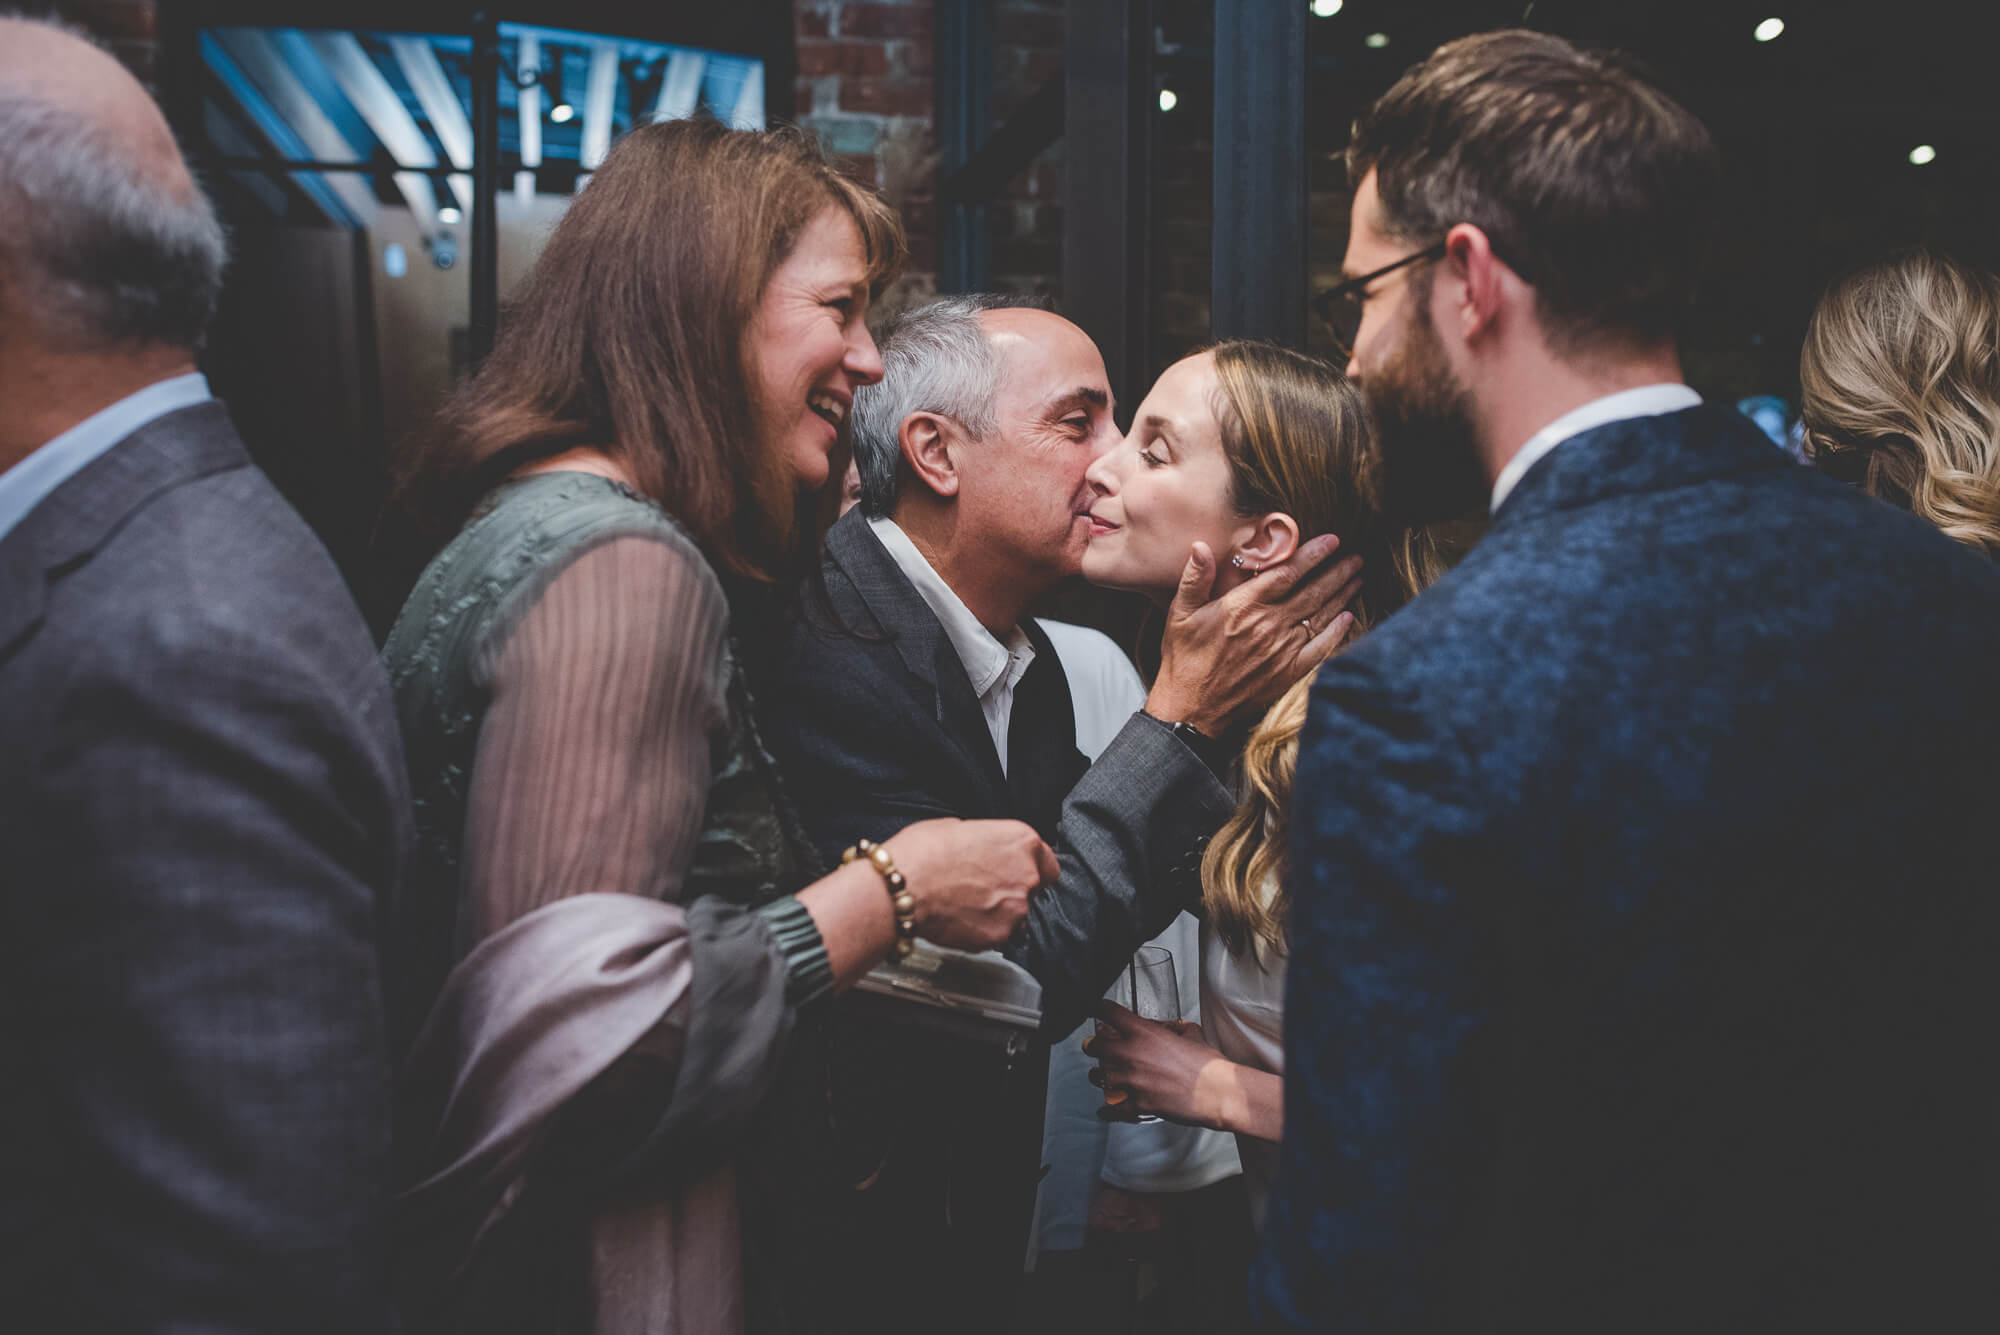 guest greeting bride with a kiss on the cheek at urban wedding reception in Vancouver